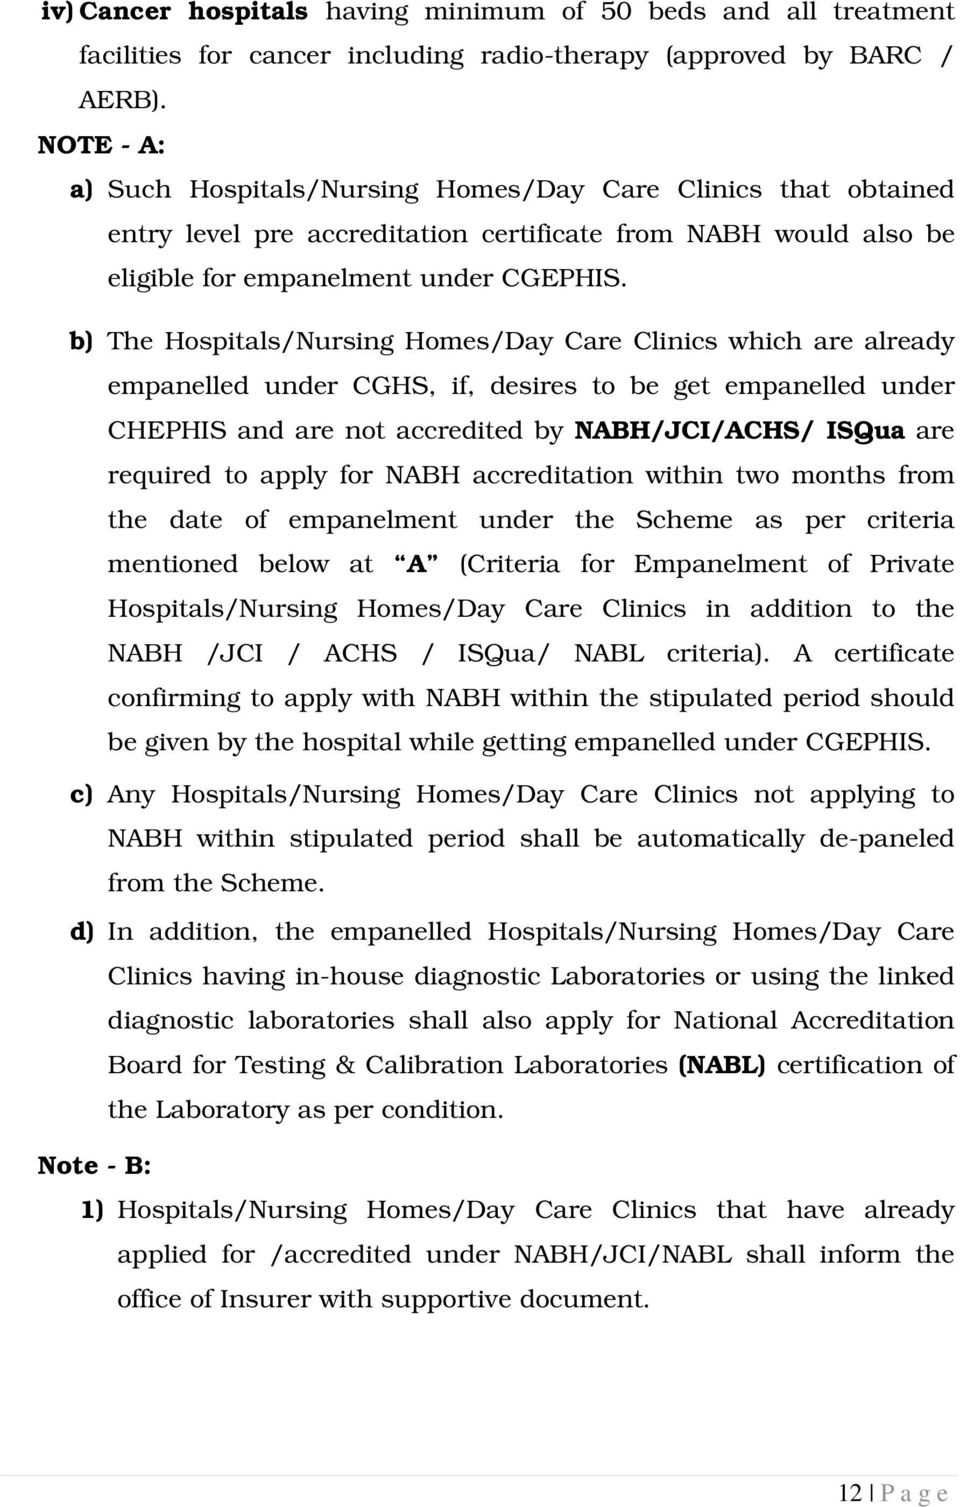 b) The Hospitals/Nursing Homes/Day Care Clinics which are already empanelled under CGHS, if, desires to be get empanelled under CHEPHIS and are not accredited by NABH/JCI/ACHS/ ISQua are required to